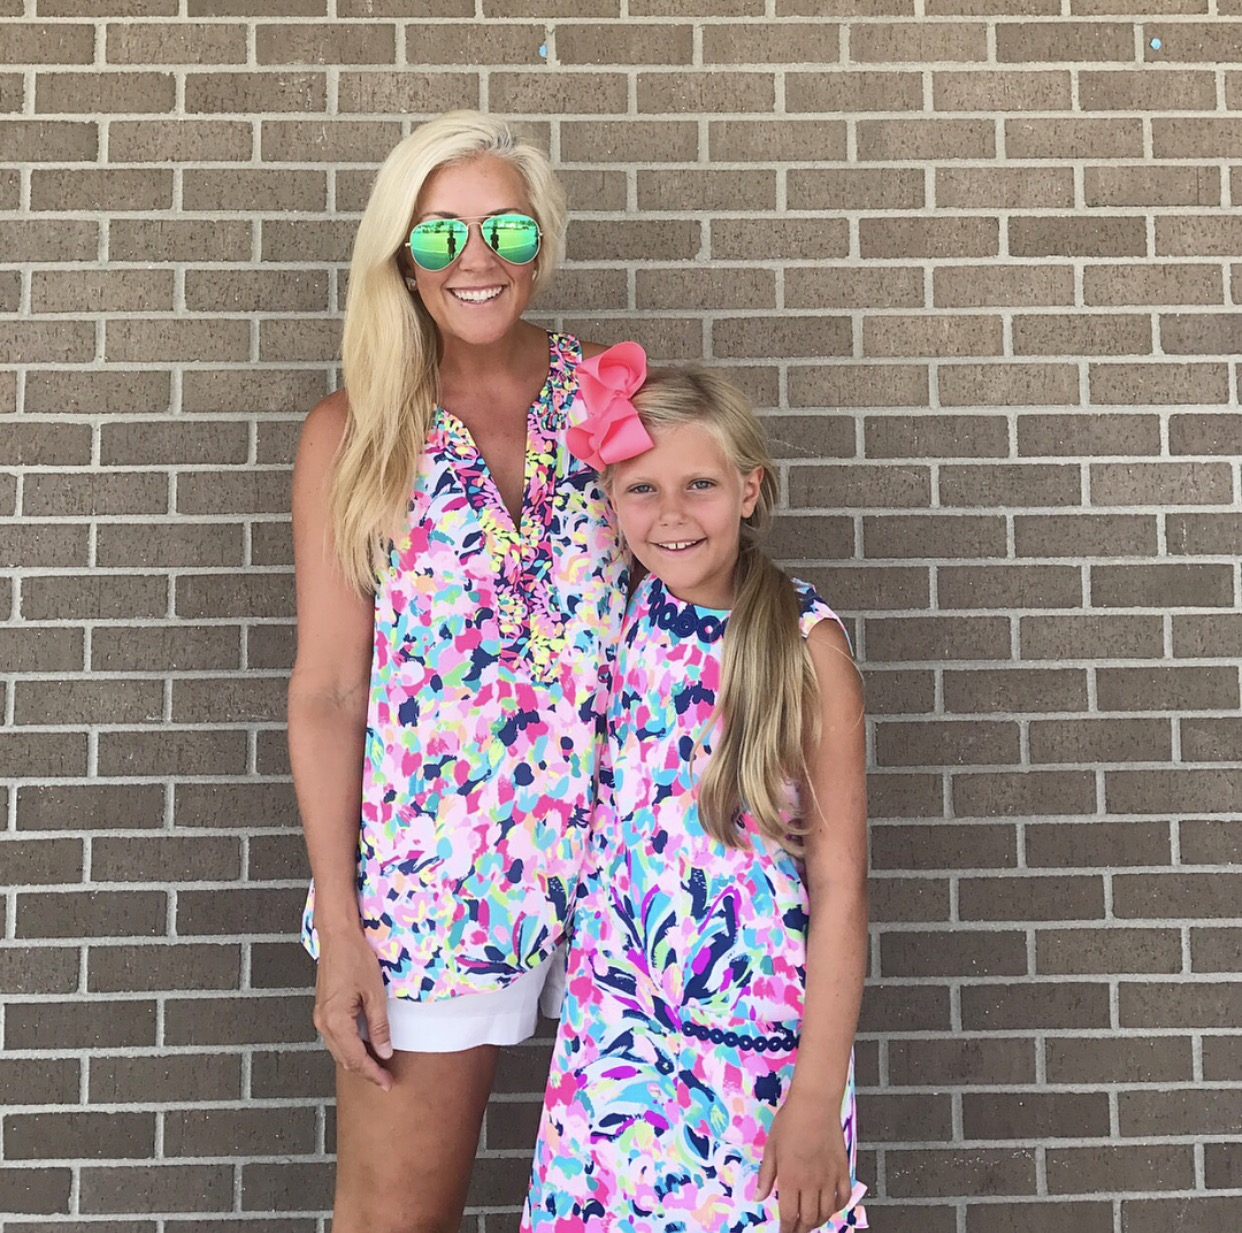 adc1a283c267db Little Lilly Shifts are clearly my favorite dresses for the girls!  Obviously, I'll be stocking up for the girls during the sale. I've said it  before, ...